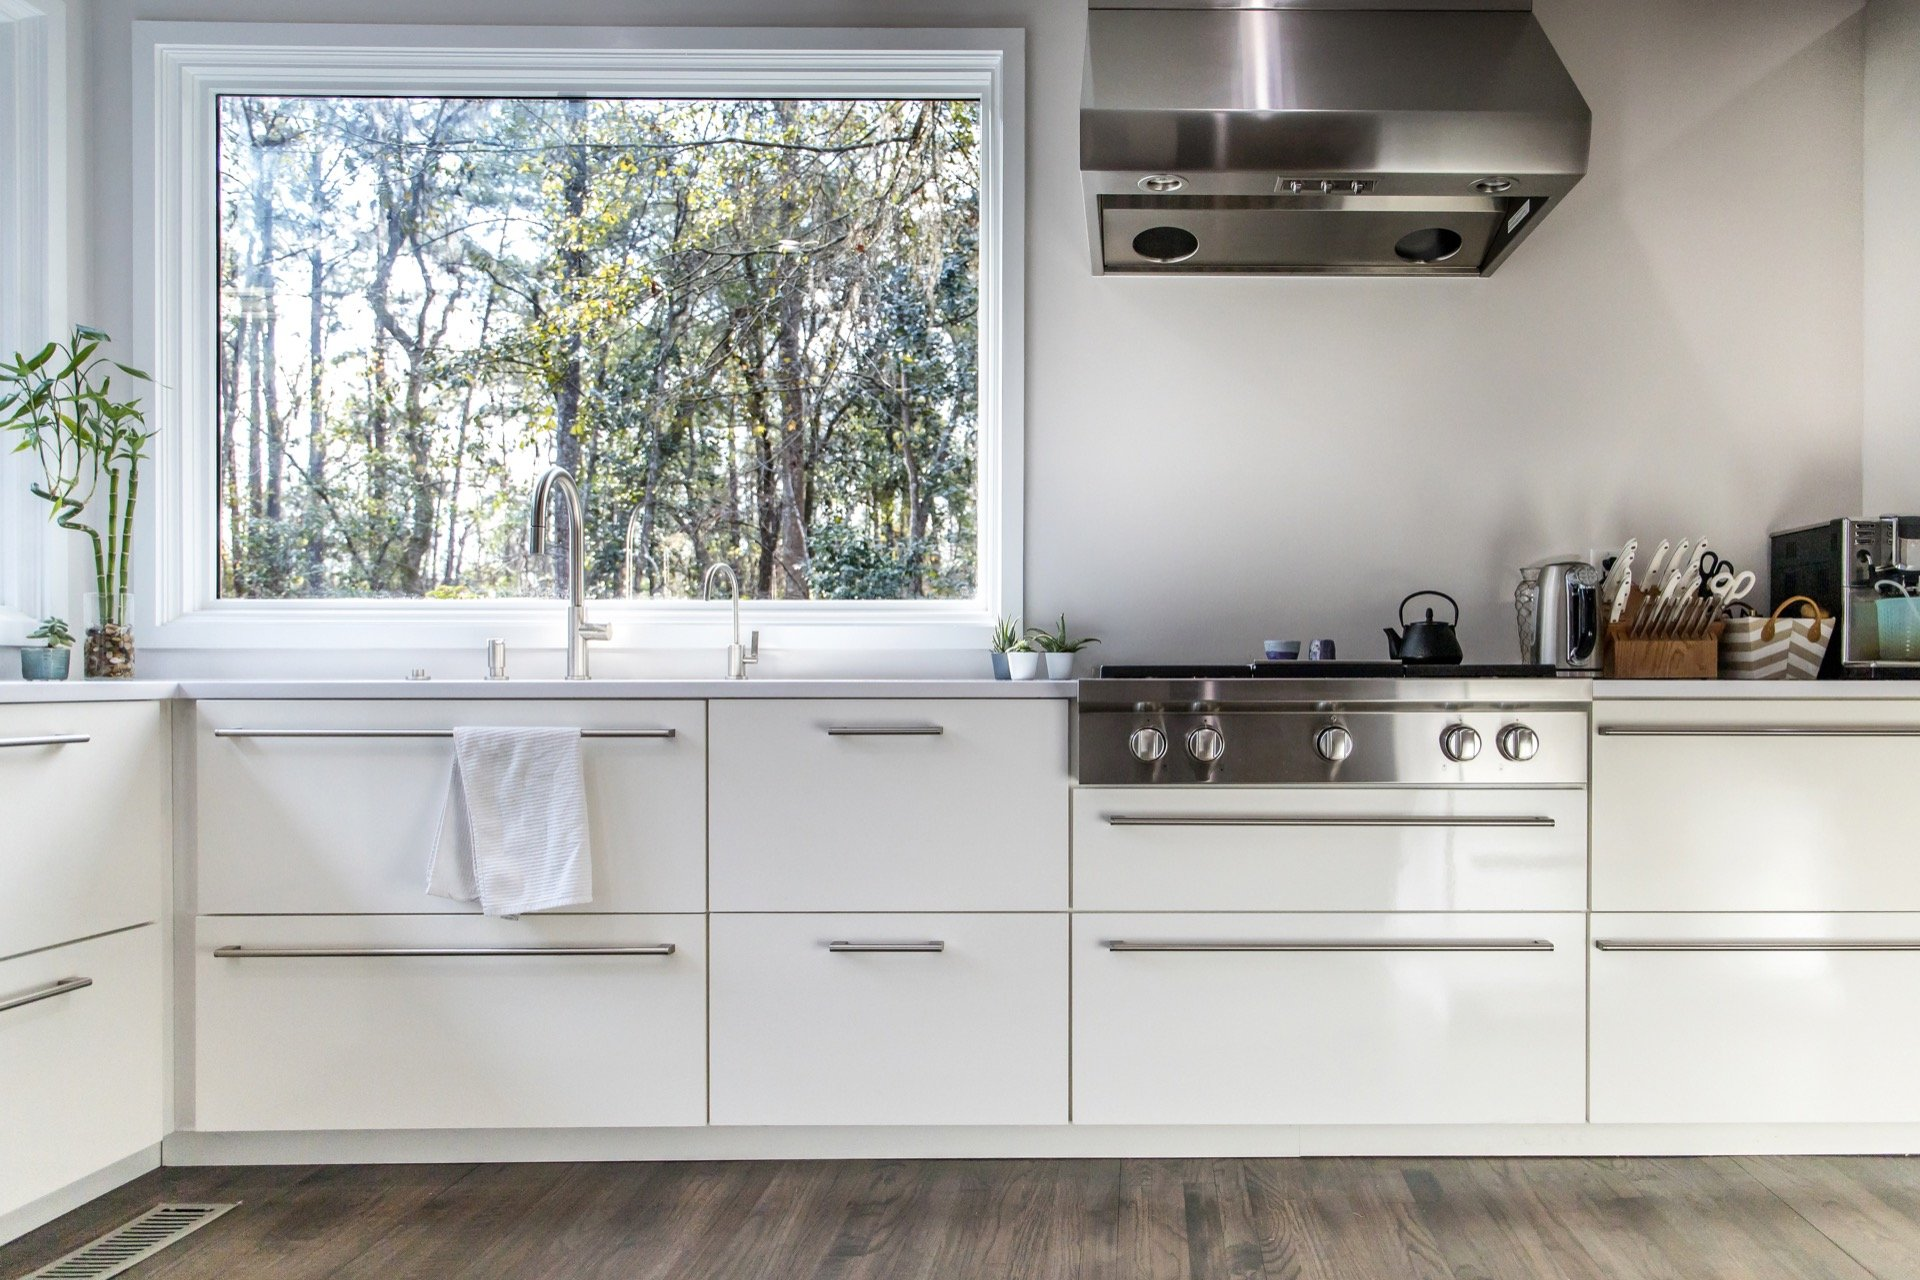 Spacious kitchen with large new window